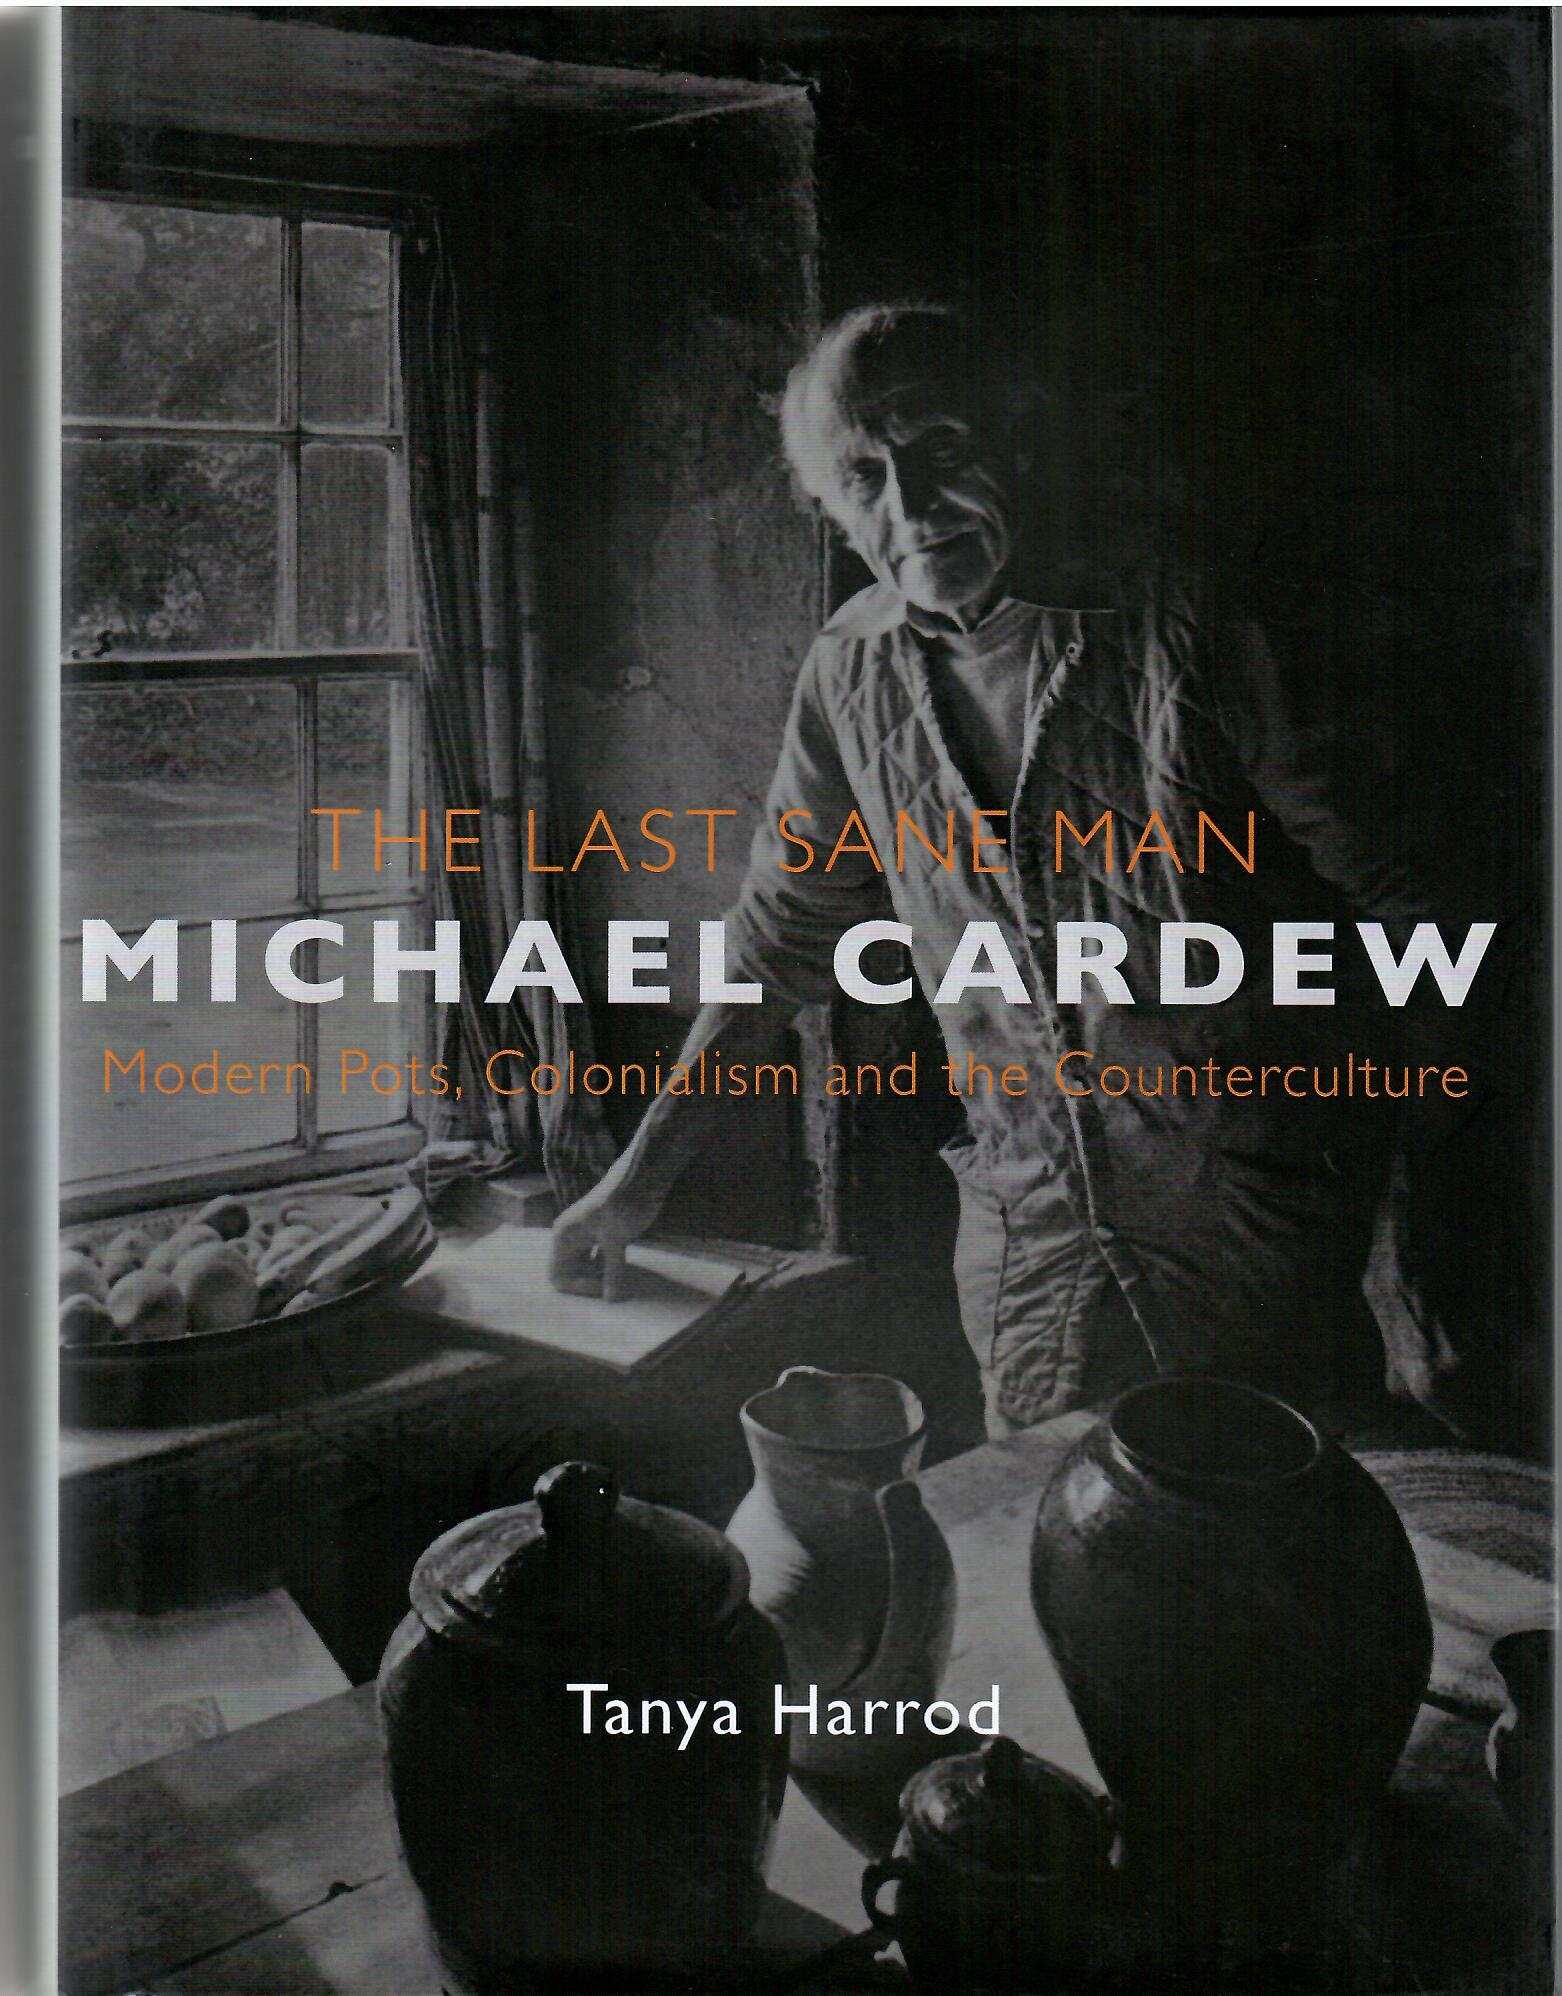 Image for Modern Pots, Colonialism and the Counterculture; THE LAST SANE MAN MICHAEL CARDEW